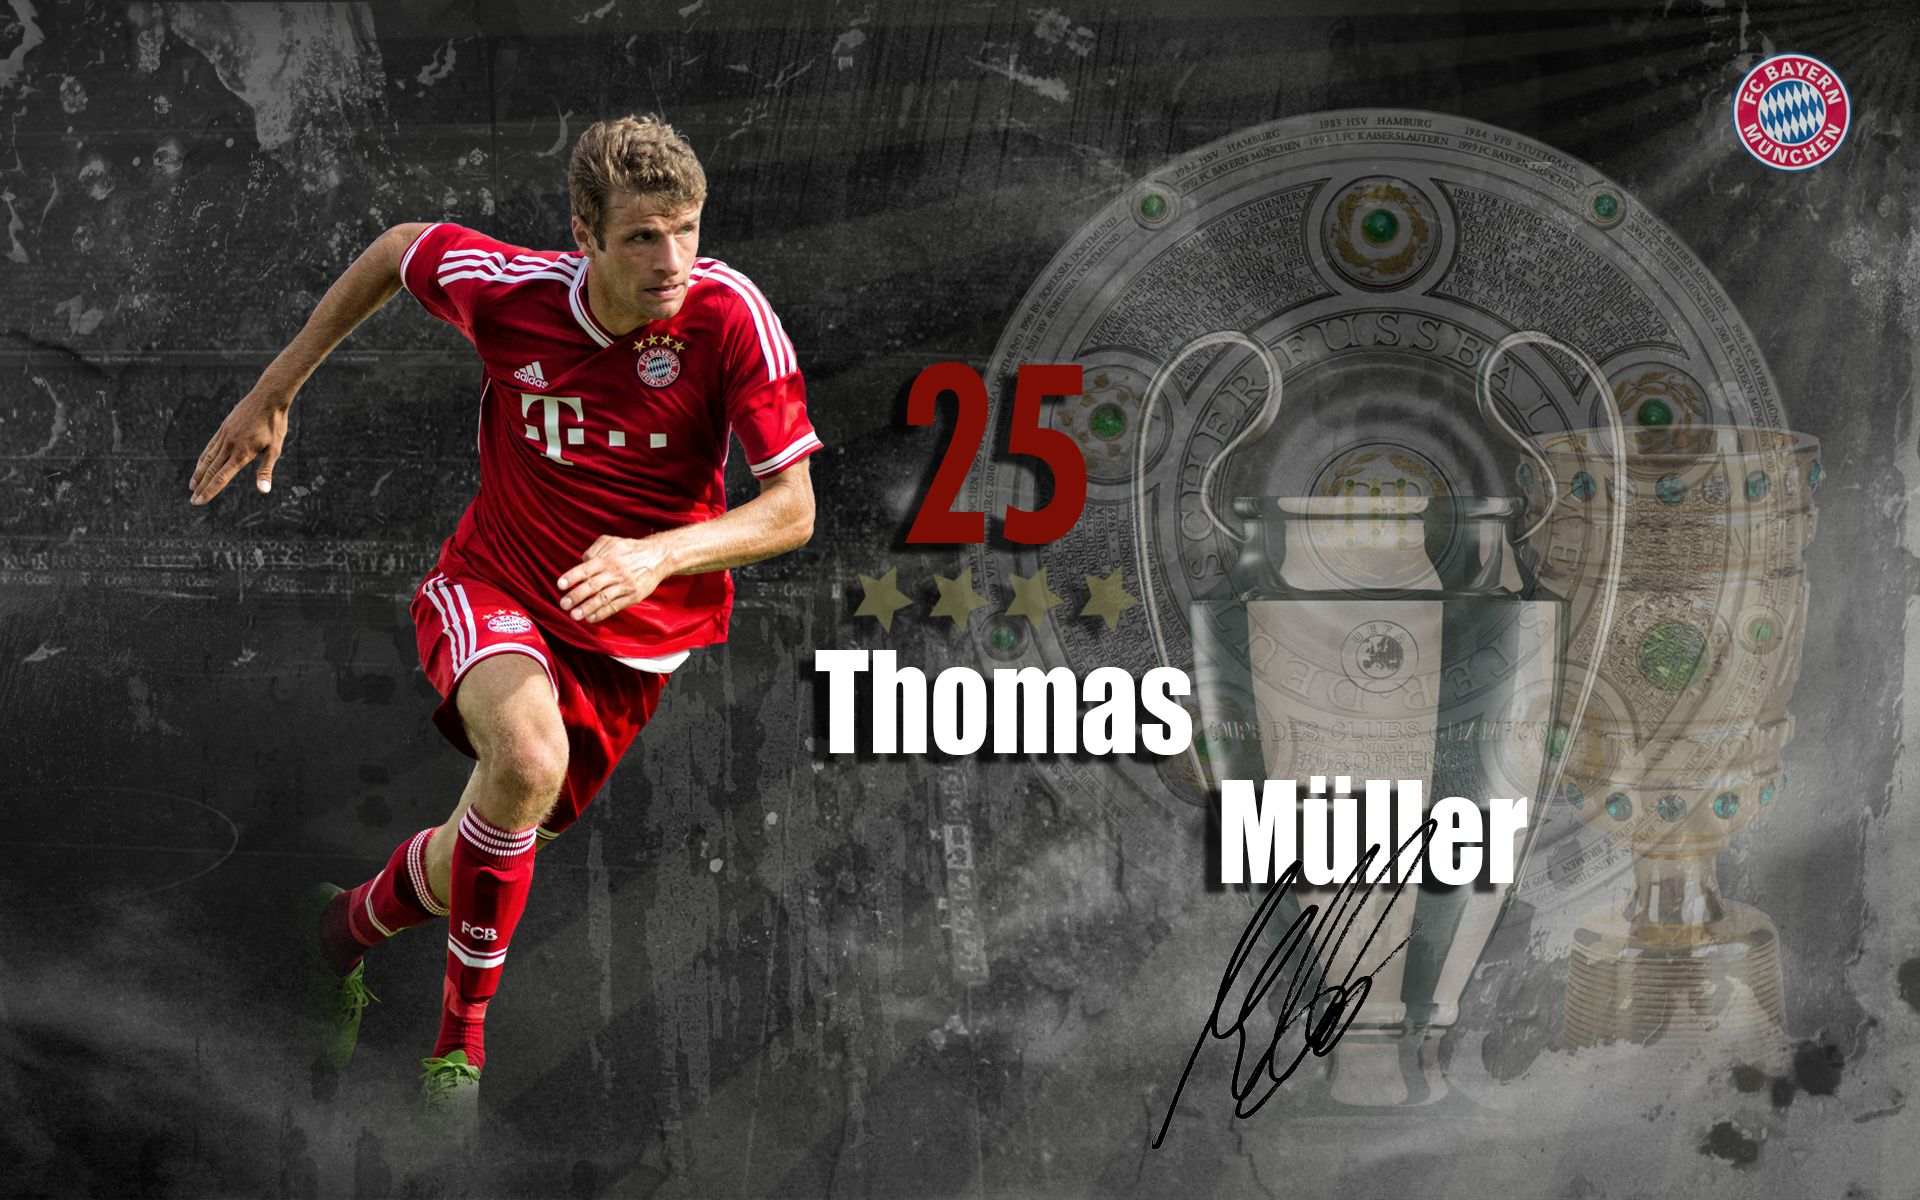 David Beckham Wallpapers With Quotes Thomas Muller Wallpaper 2015 Thomas Muller Bayern